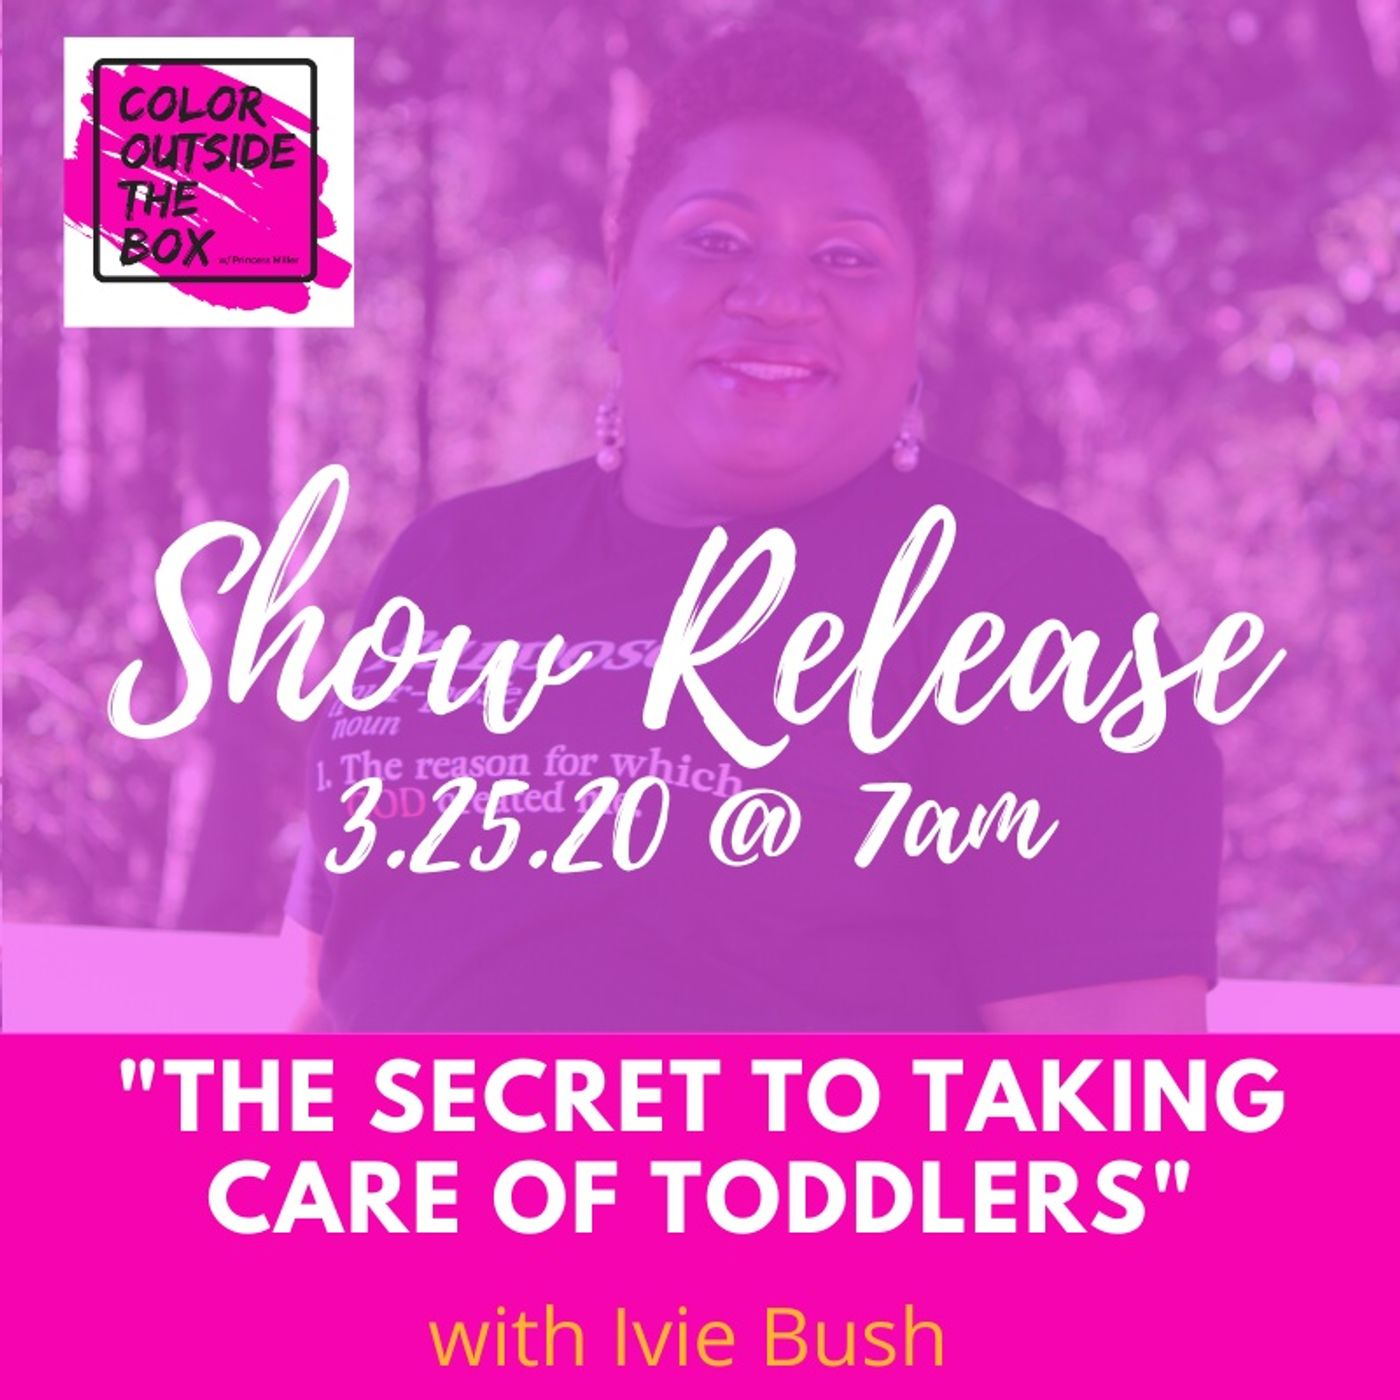 The Secret to Taking Care of Toddlers with Ivie Bush